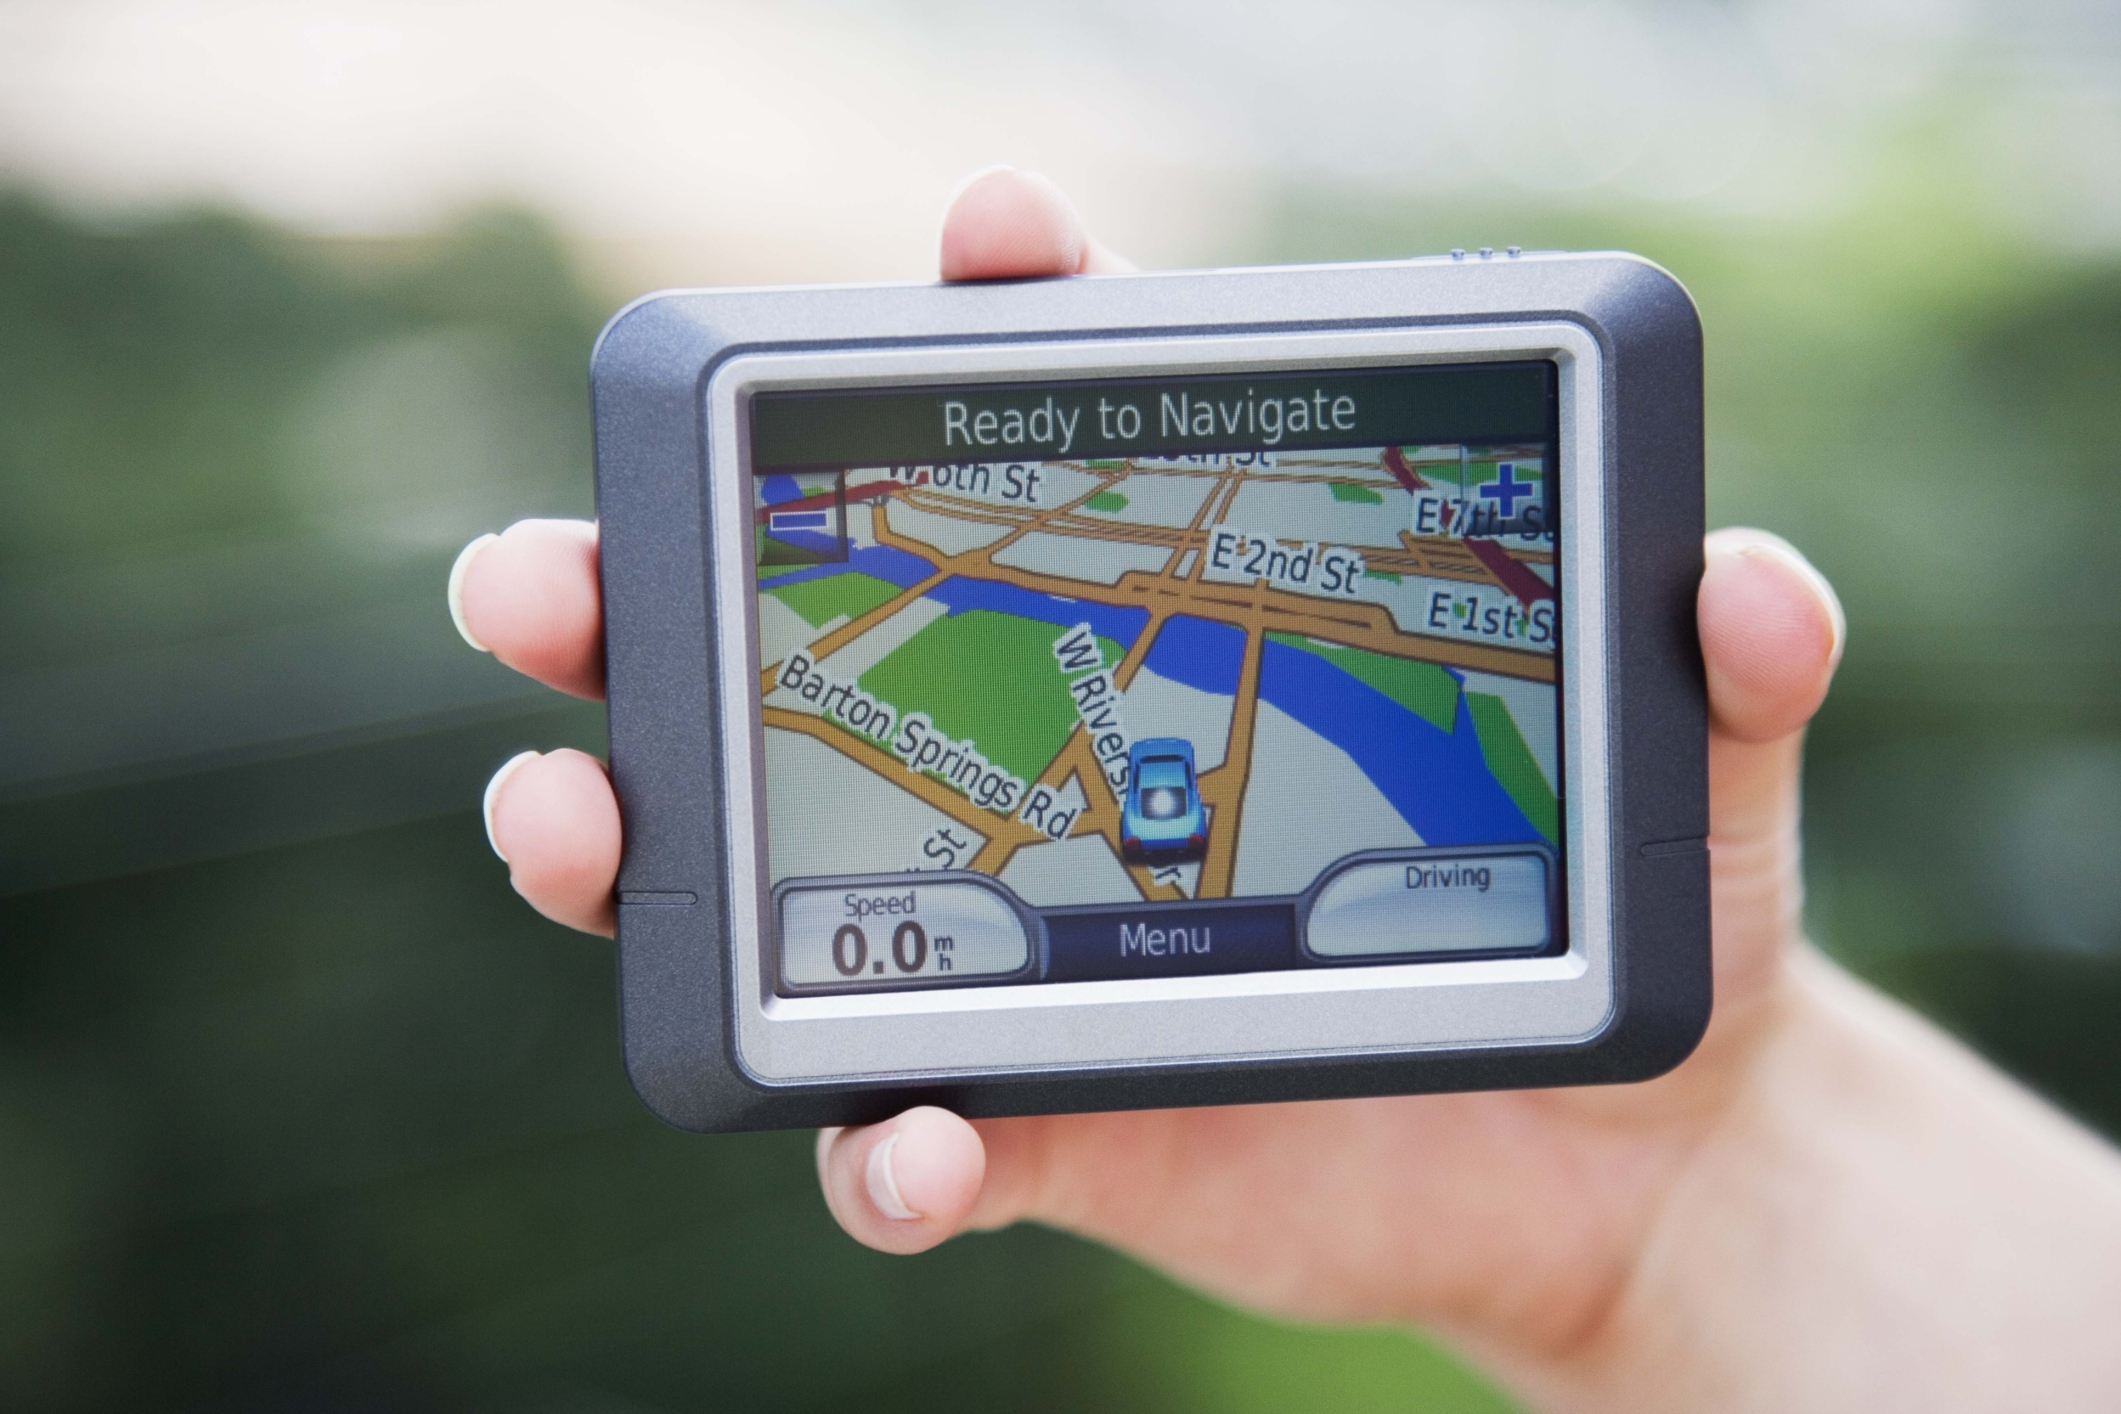 How to Download Maps to Micro SD Card for Garmin Device ... Garmin Nuvi Map Update on garmin nuvi 1390 map update, garmin nuvi 1100 map update, garmin nuvi 205 map update, garmin nuvi 2595 map update, garmin nuvi 660 map update, garmin nuvi 360 map update, garmin nuvi 2555lmt map update, garmin nuvi 1450 map update, garmin 1300 review, tomtom start map update, my garmin nuvi 1450 update, garmin lifetime updater, garmin nuvi 265w map update, garmin nuvi 205w map update, garmin nuvi safety camera update, garmin streetpilot c340 map update, garmin nuvi lifetime update, garmin with lifetime map updates, garmin nuvi 350 map update, garmin nuvi 250w map update,